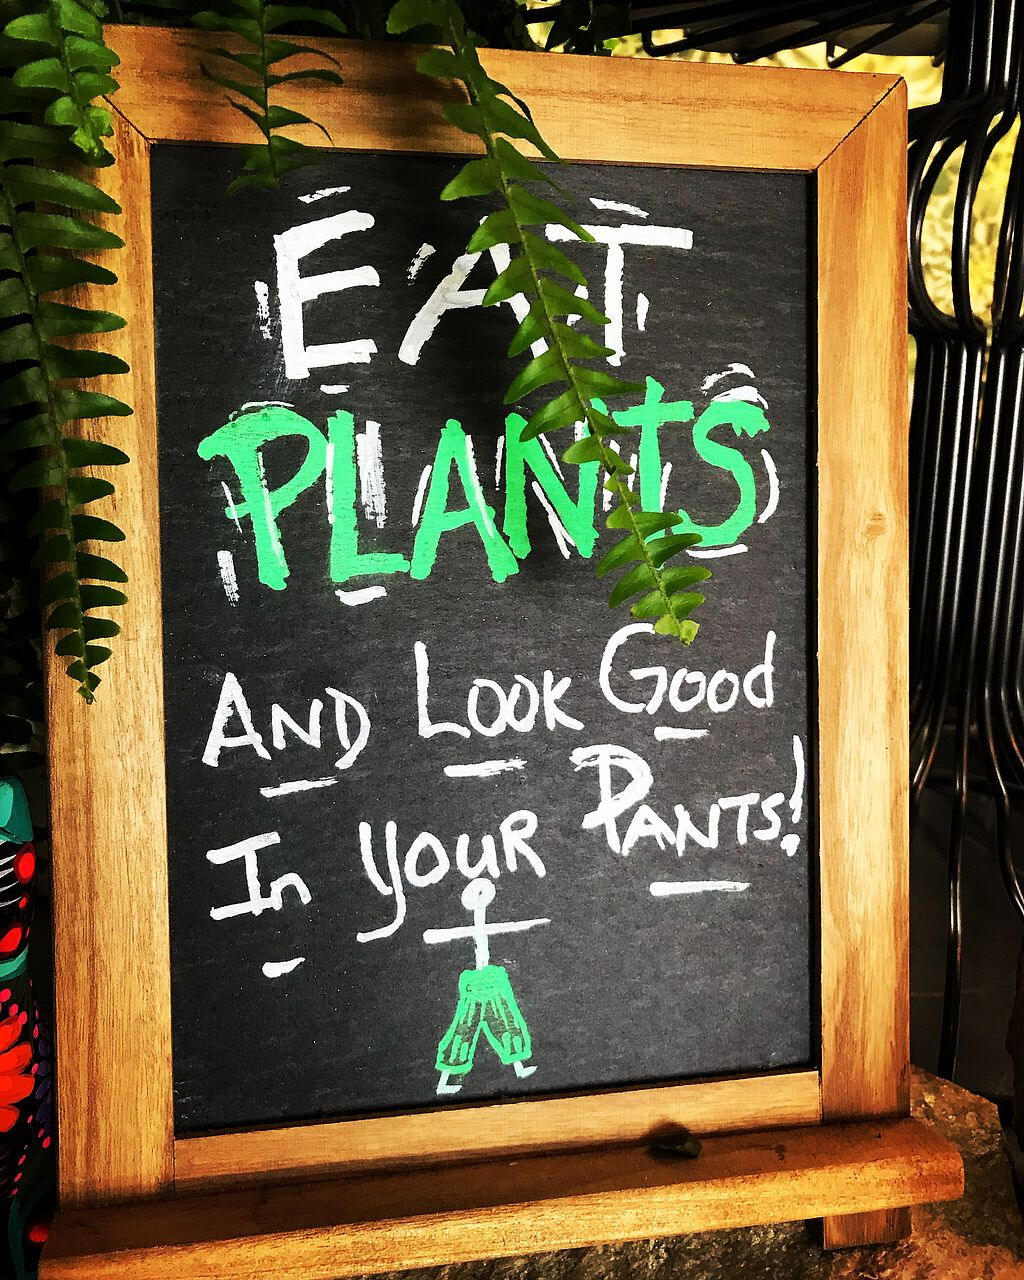 """Photo of Chef Tanya's Kitchen  by <a href=""""/members/profile/SoWo1999"""">SoWo1999</a> <br/>Eat plants! <br/> March 17, 2018  - <a href='/contact/abuse/image/93206/371656'>Report</a>"""